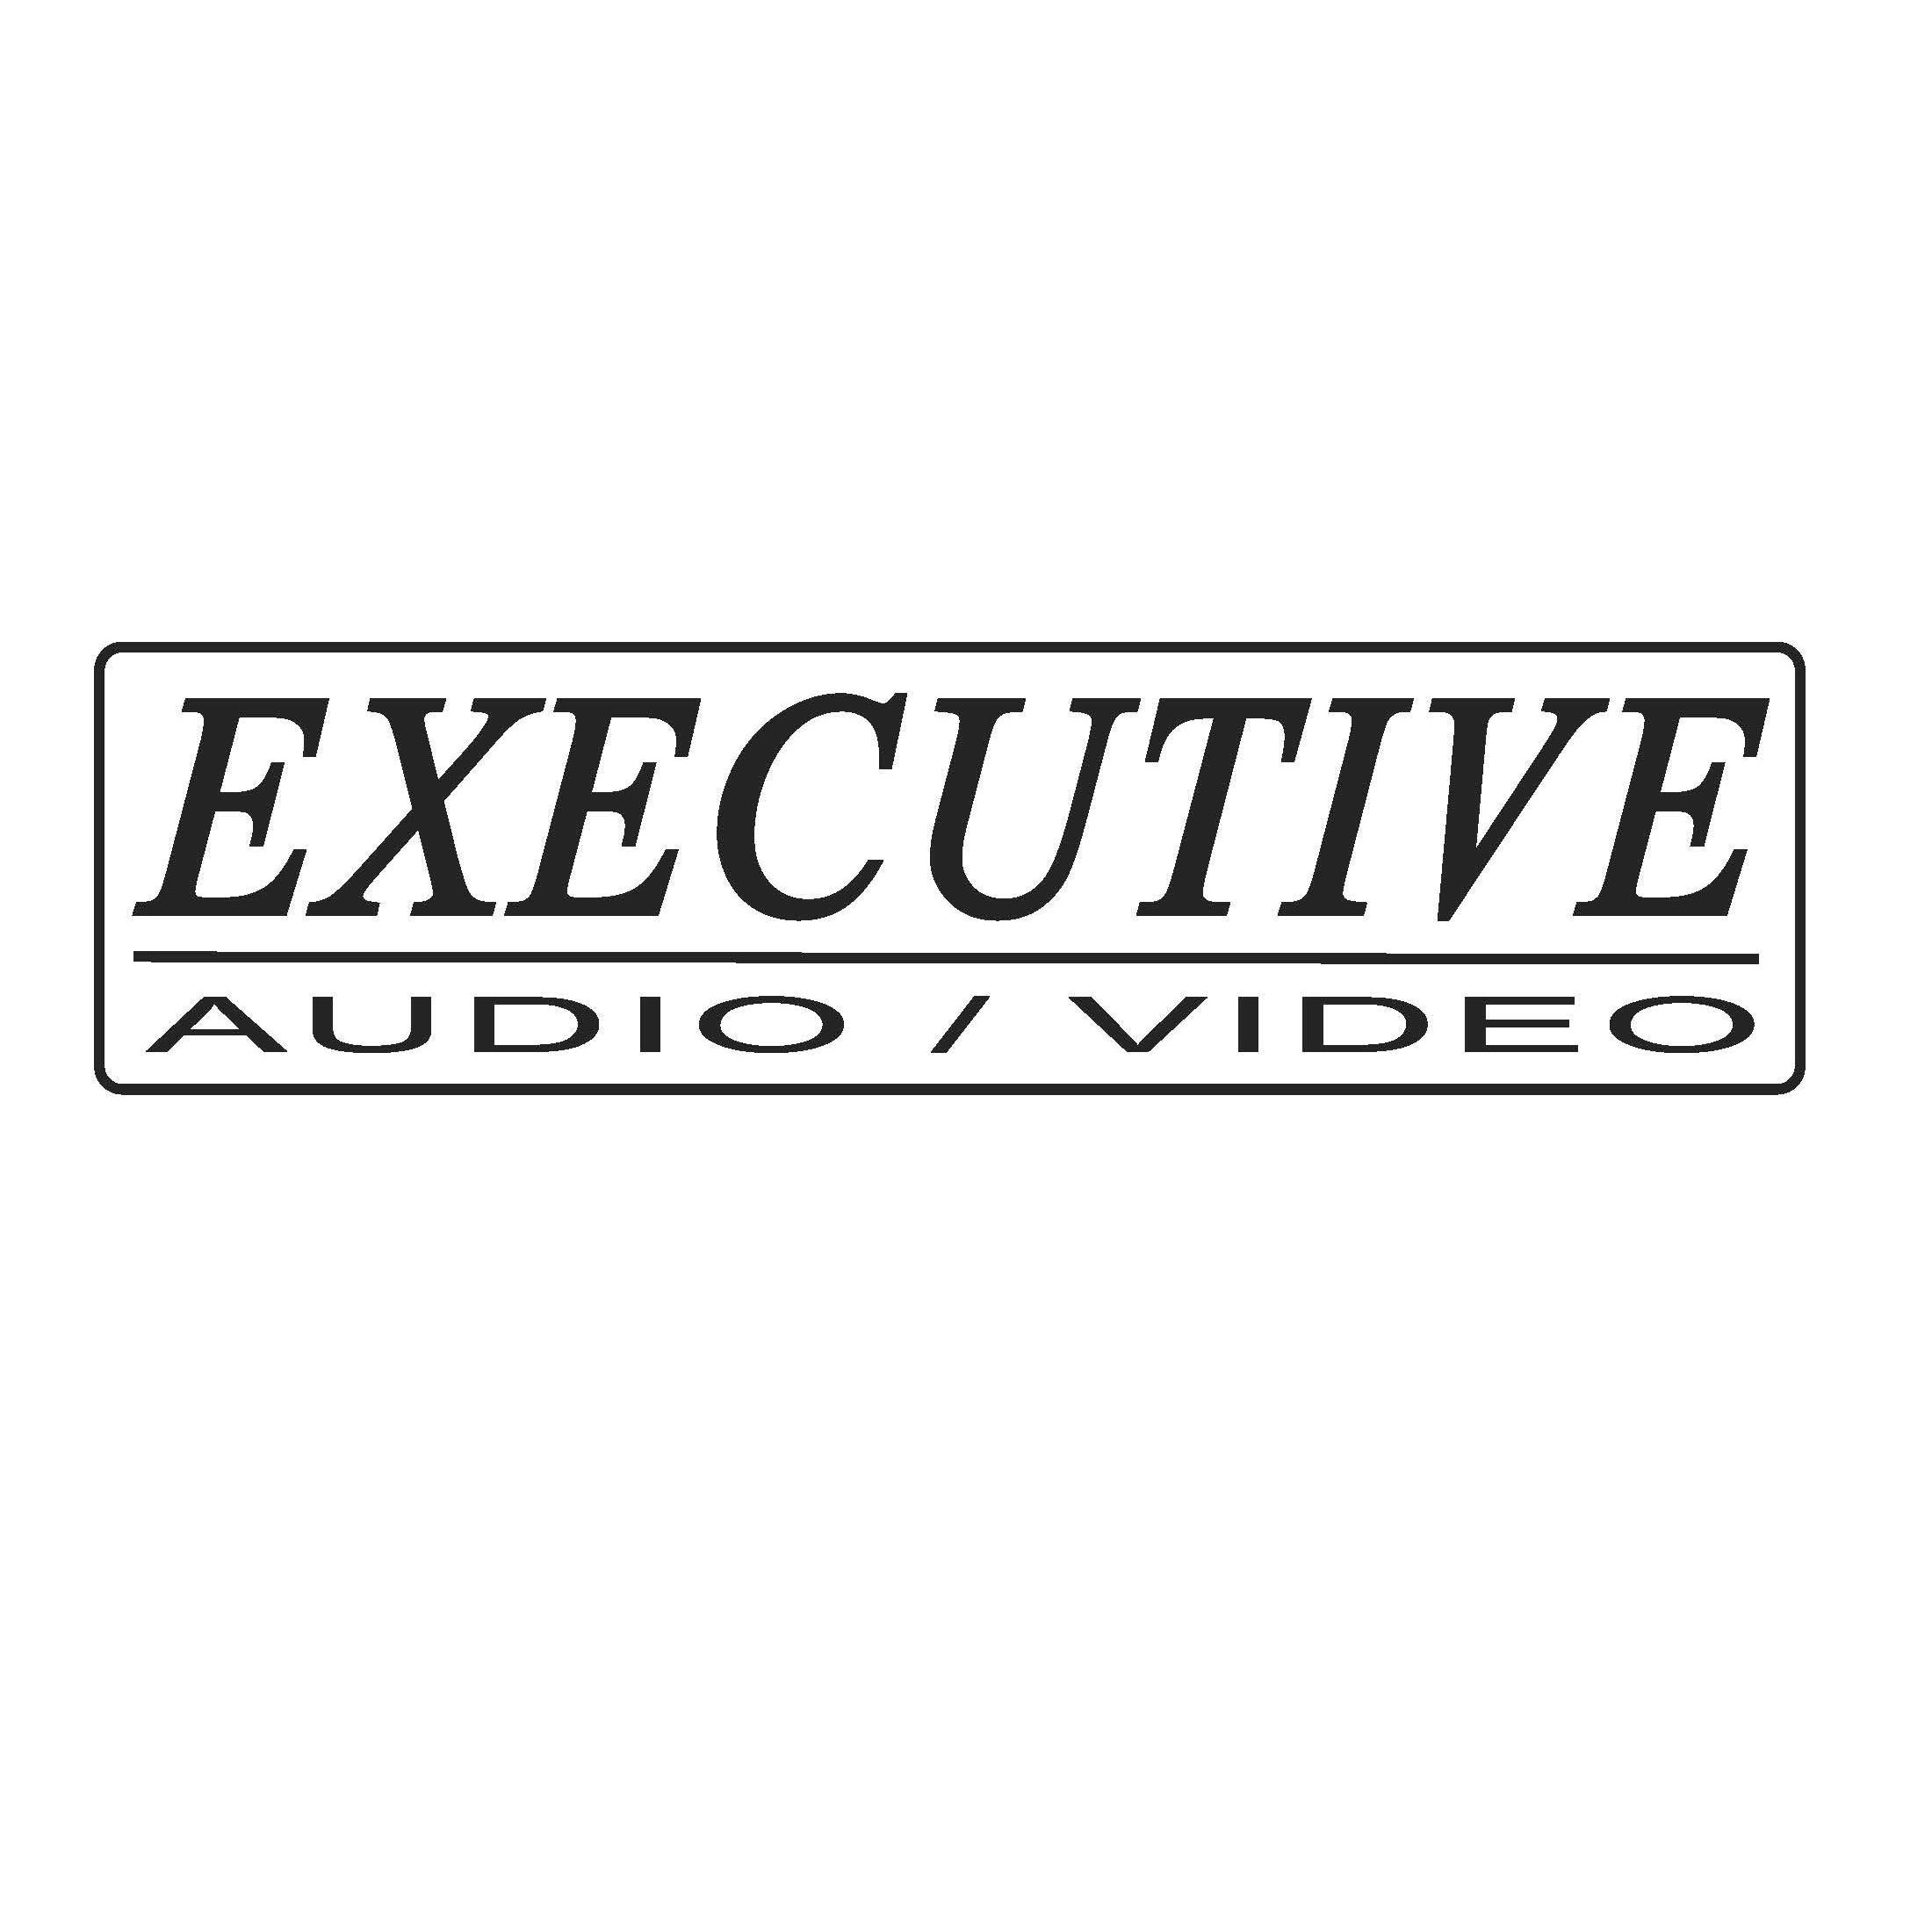 Executive Audio/Video